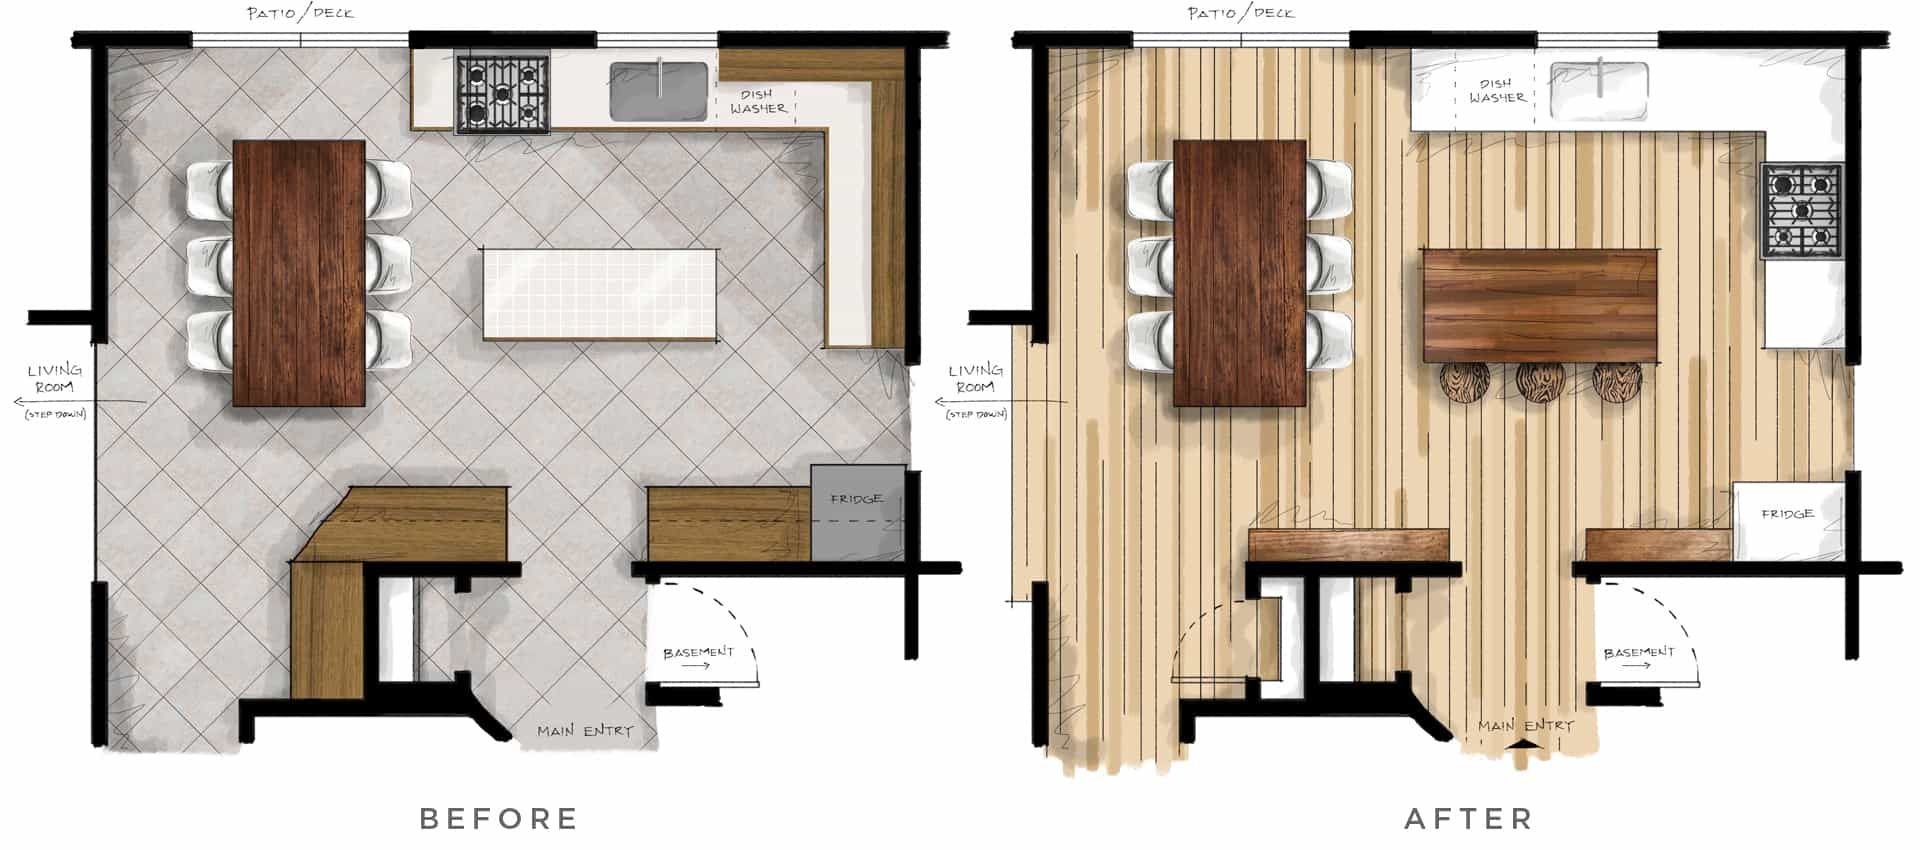 kitchen floor plan before and after